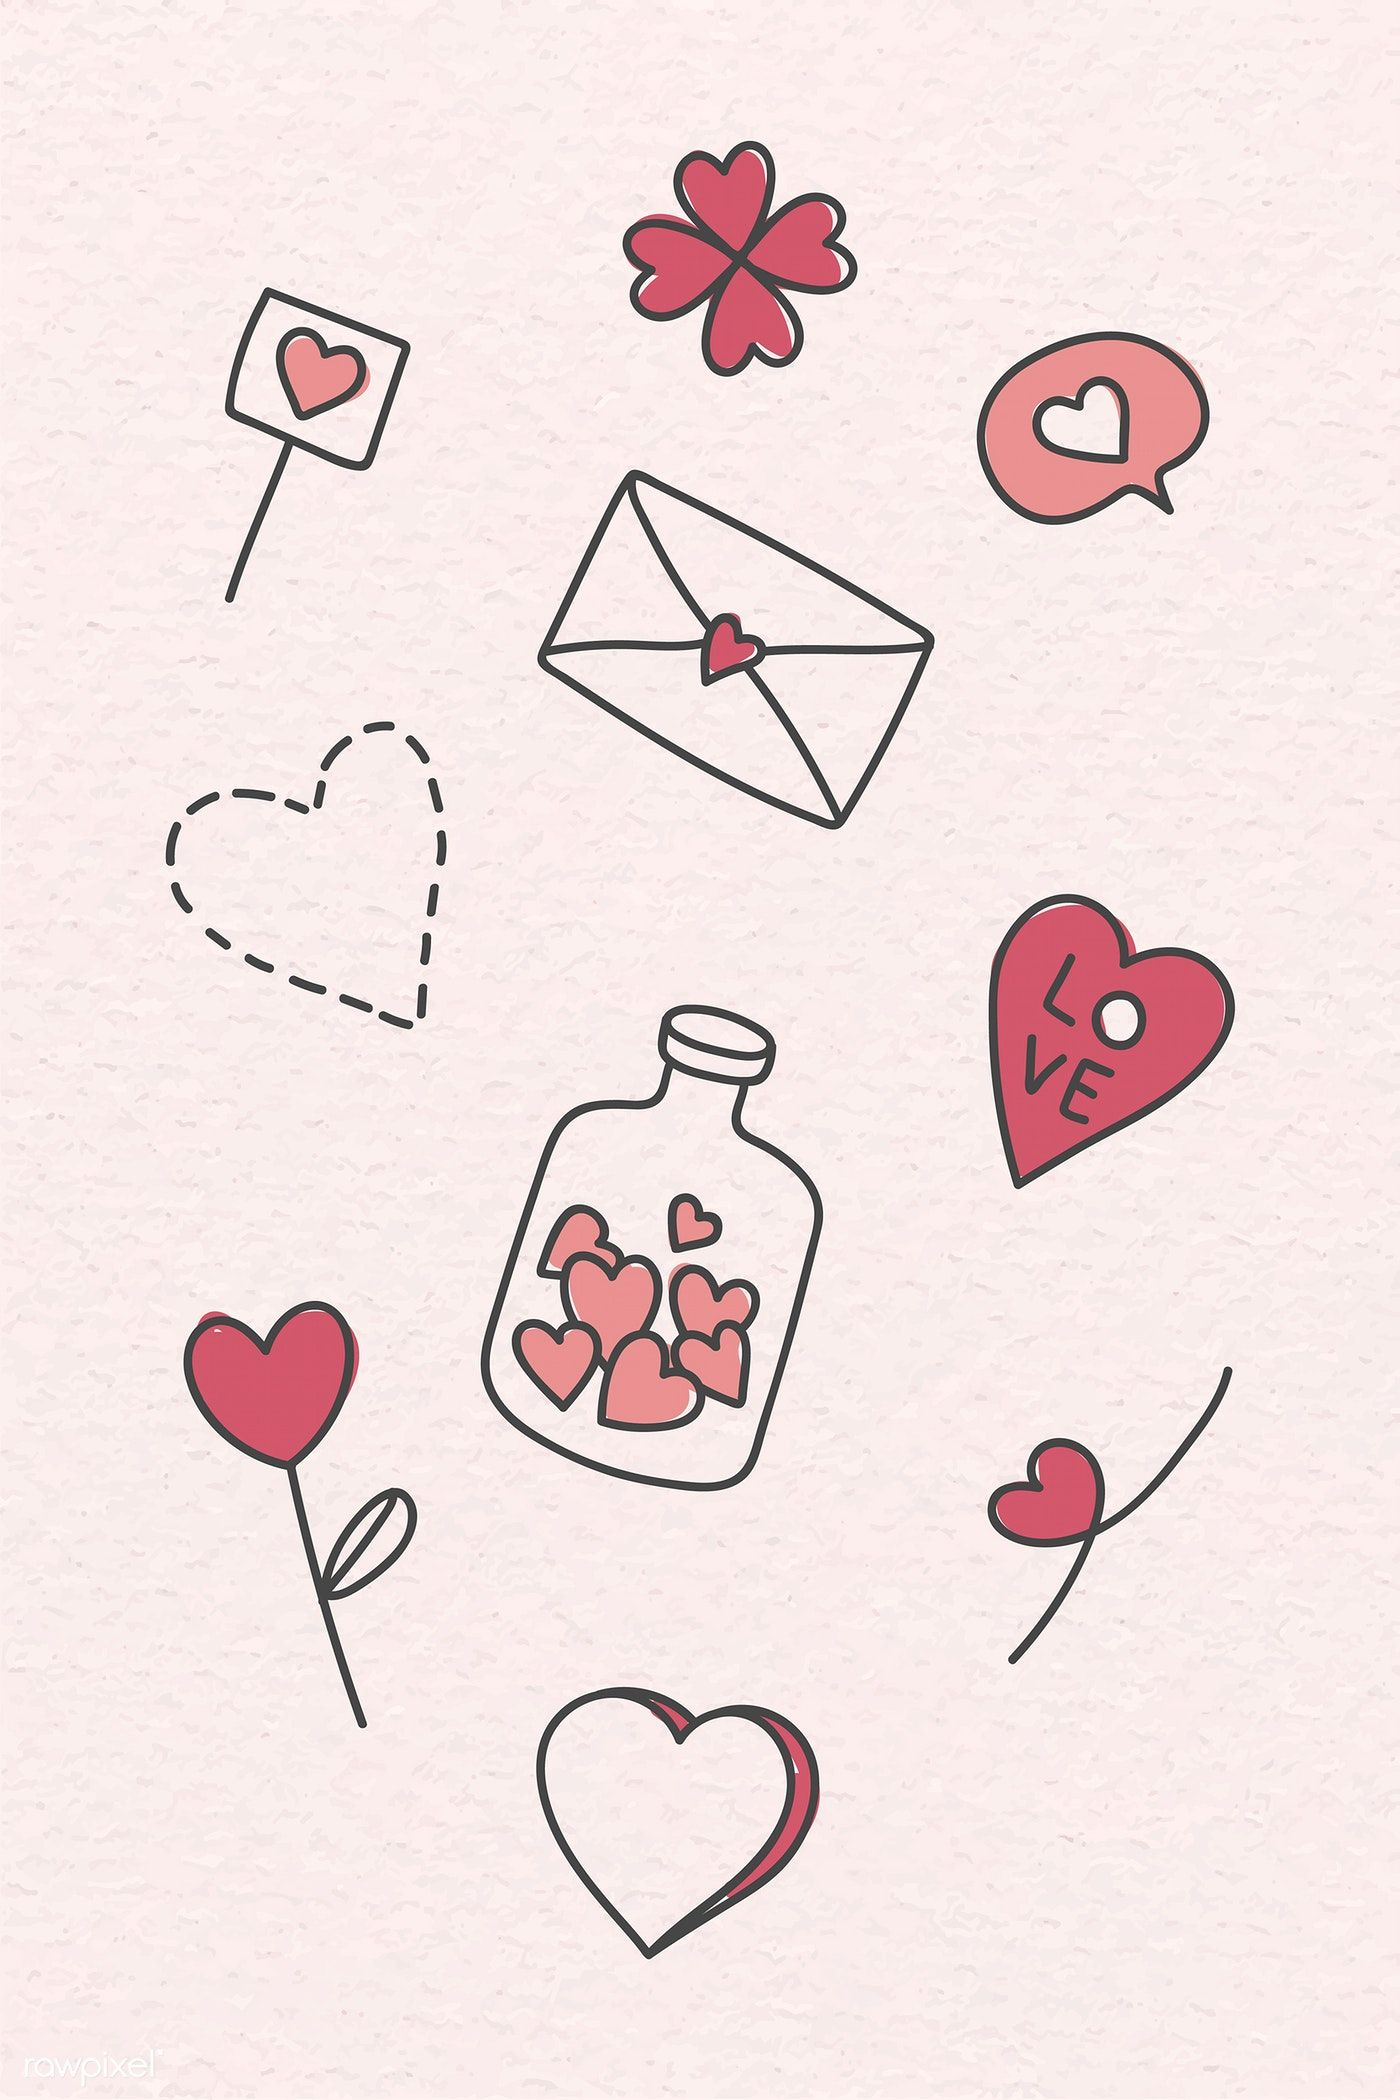 Download premium vector of Hand drawn love and valentine's day doodle